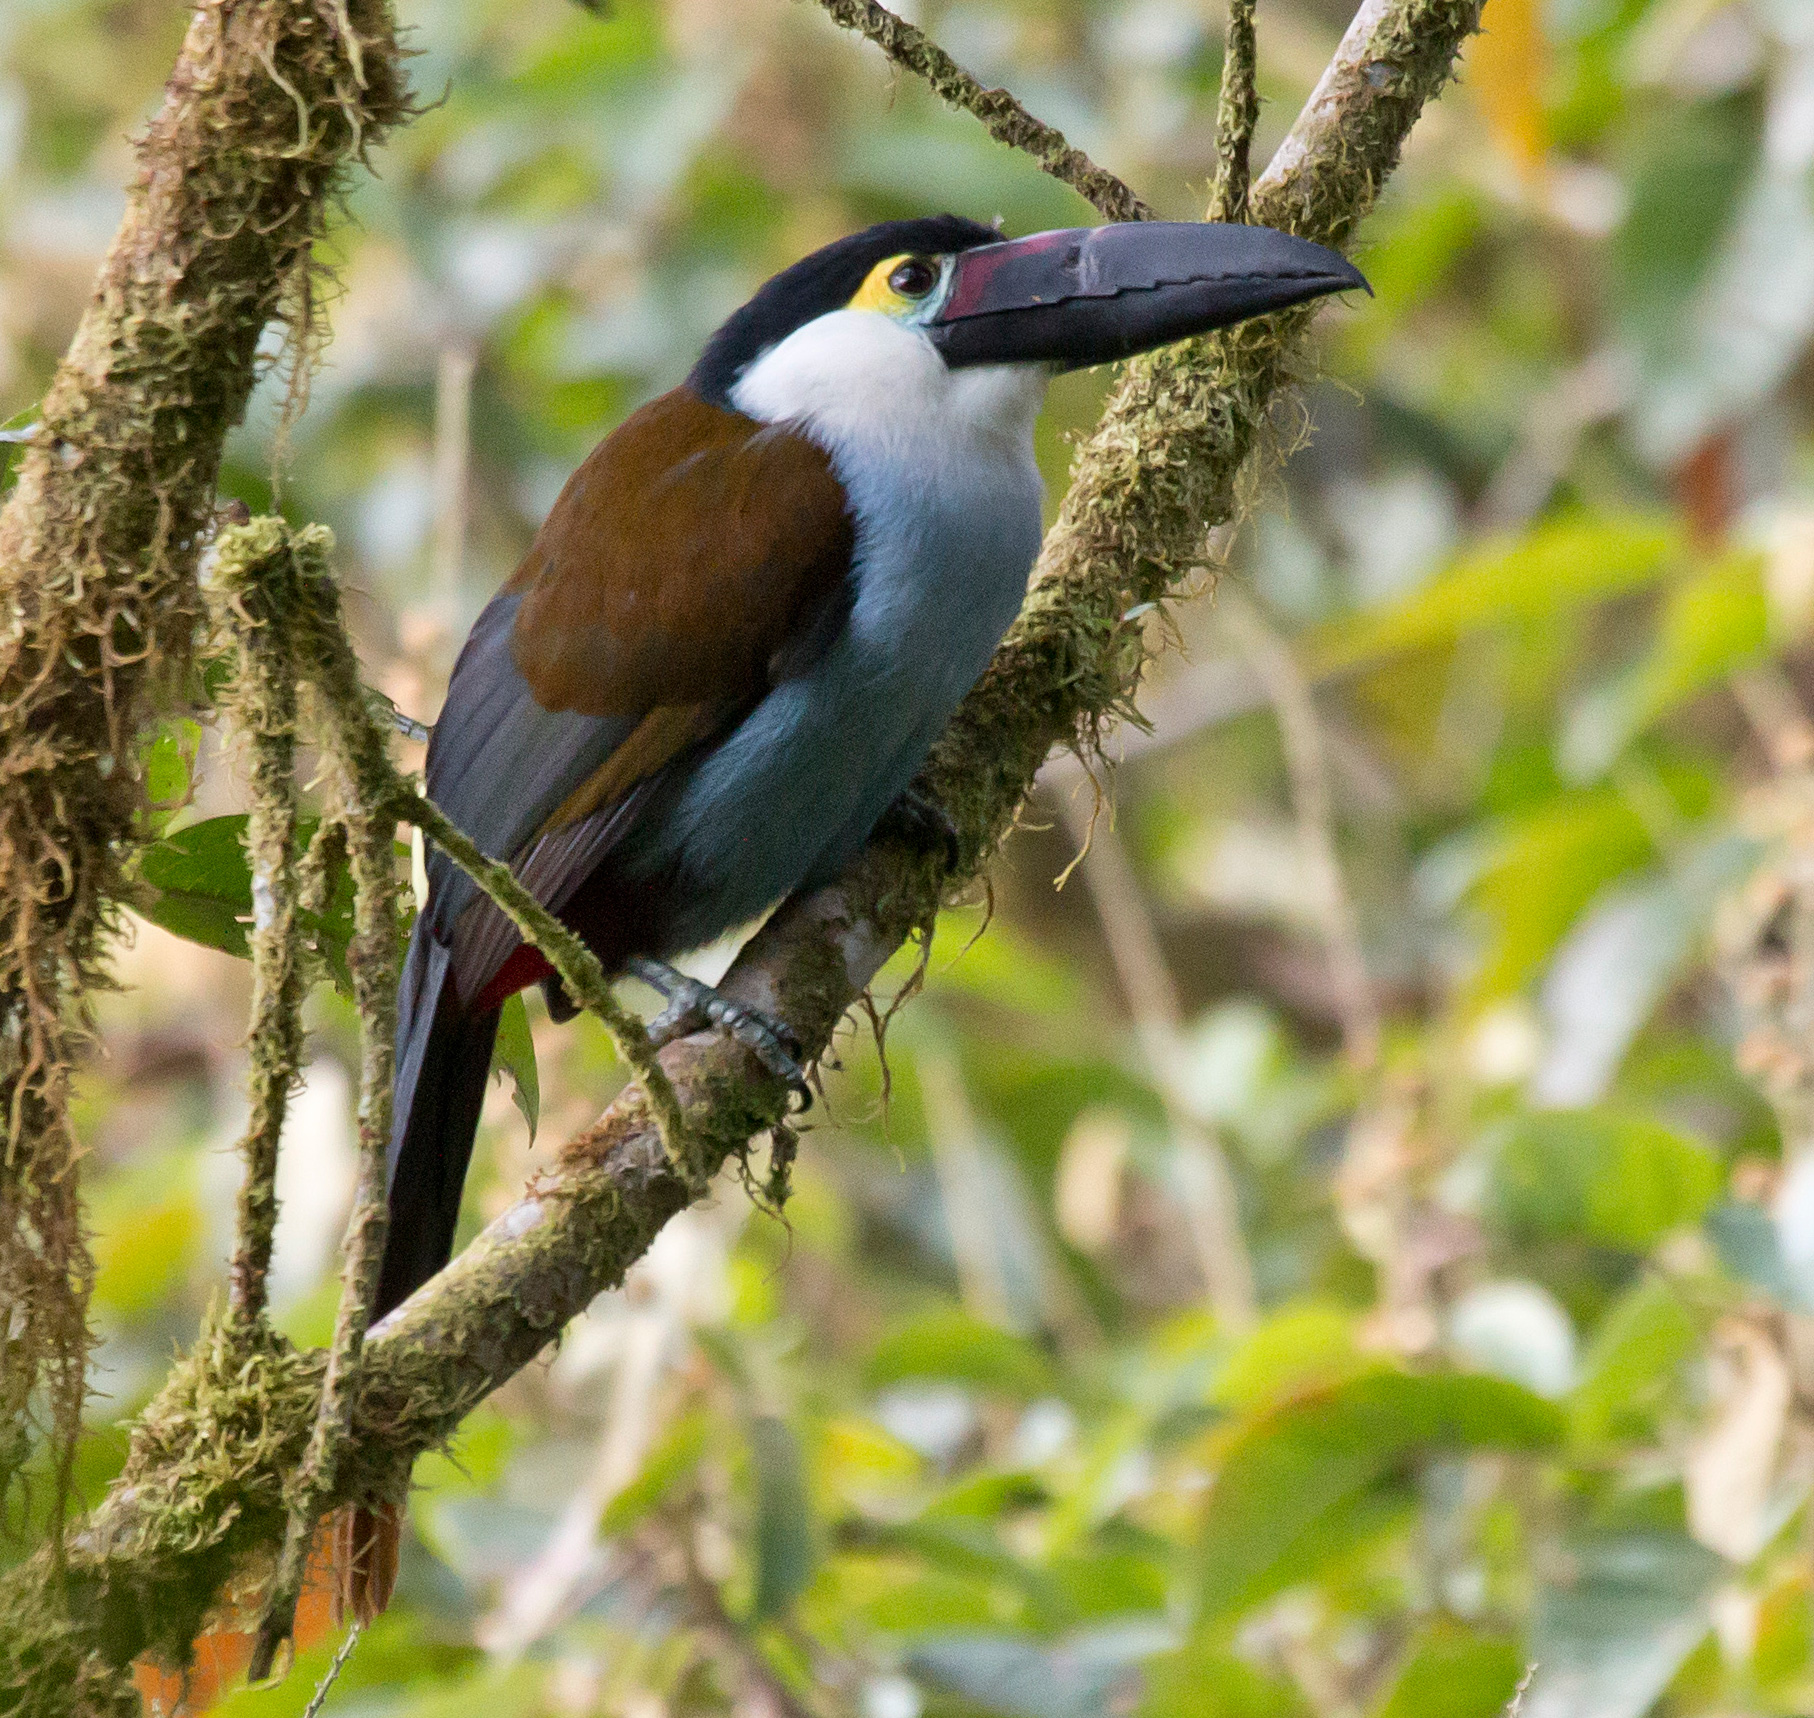 https://upload.wikimedia.org/wikipedia/commons/3/37/Black-billed-Mountain-Toucan.jpg